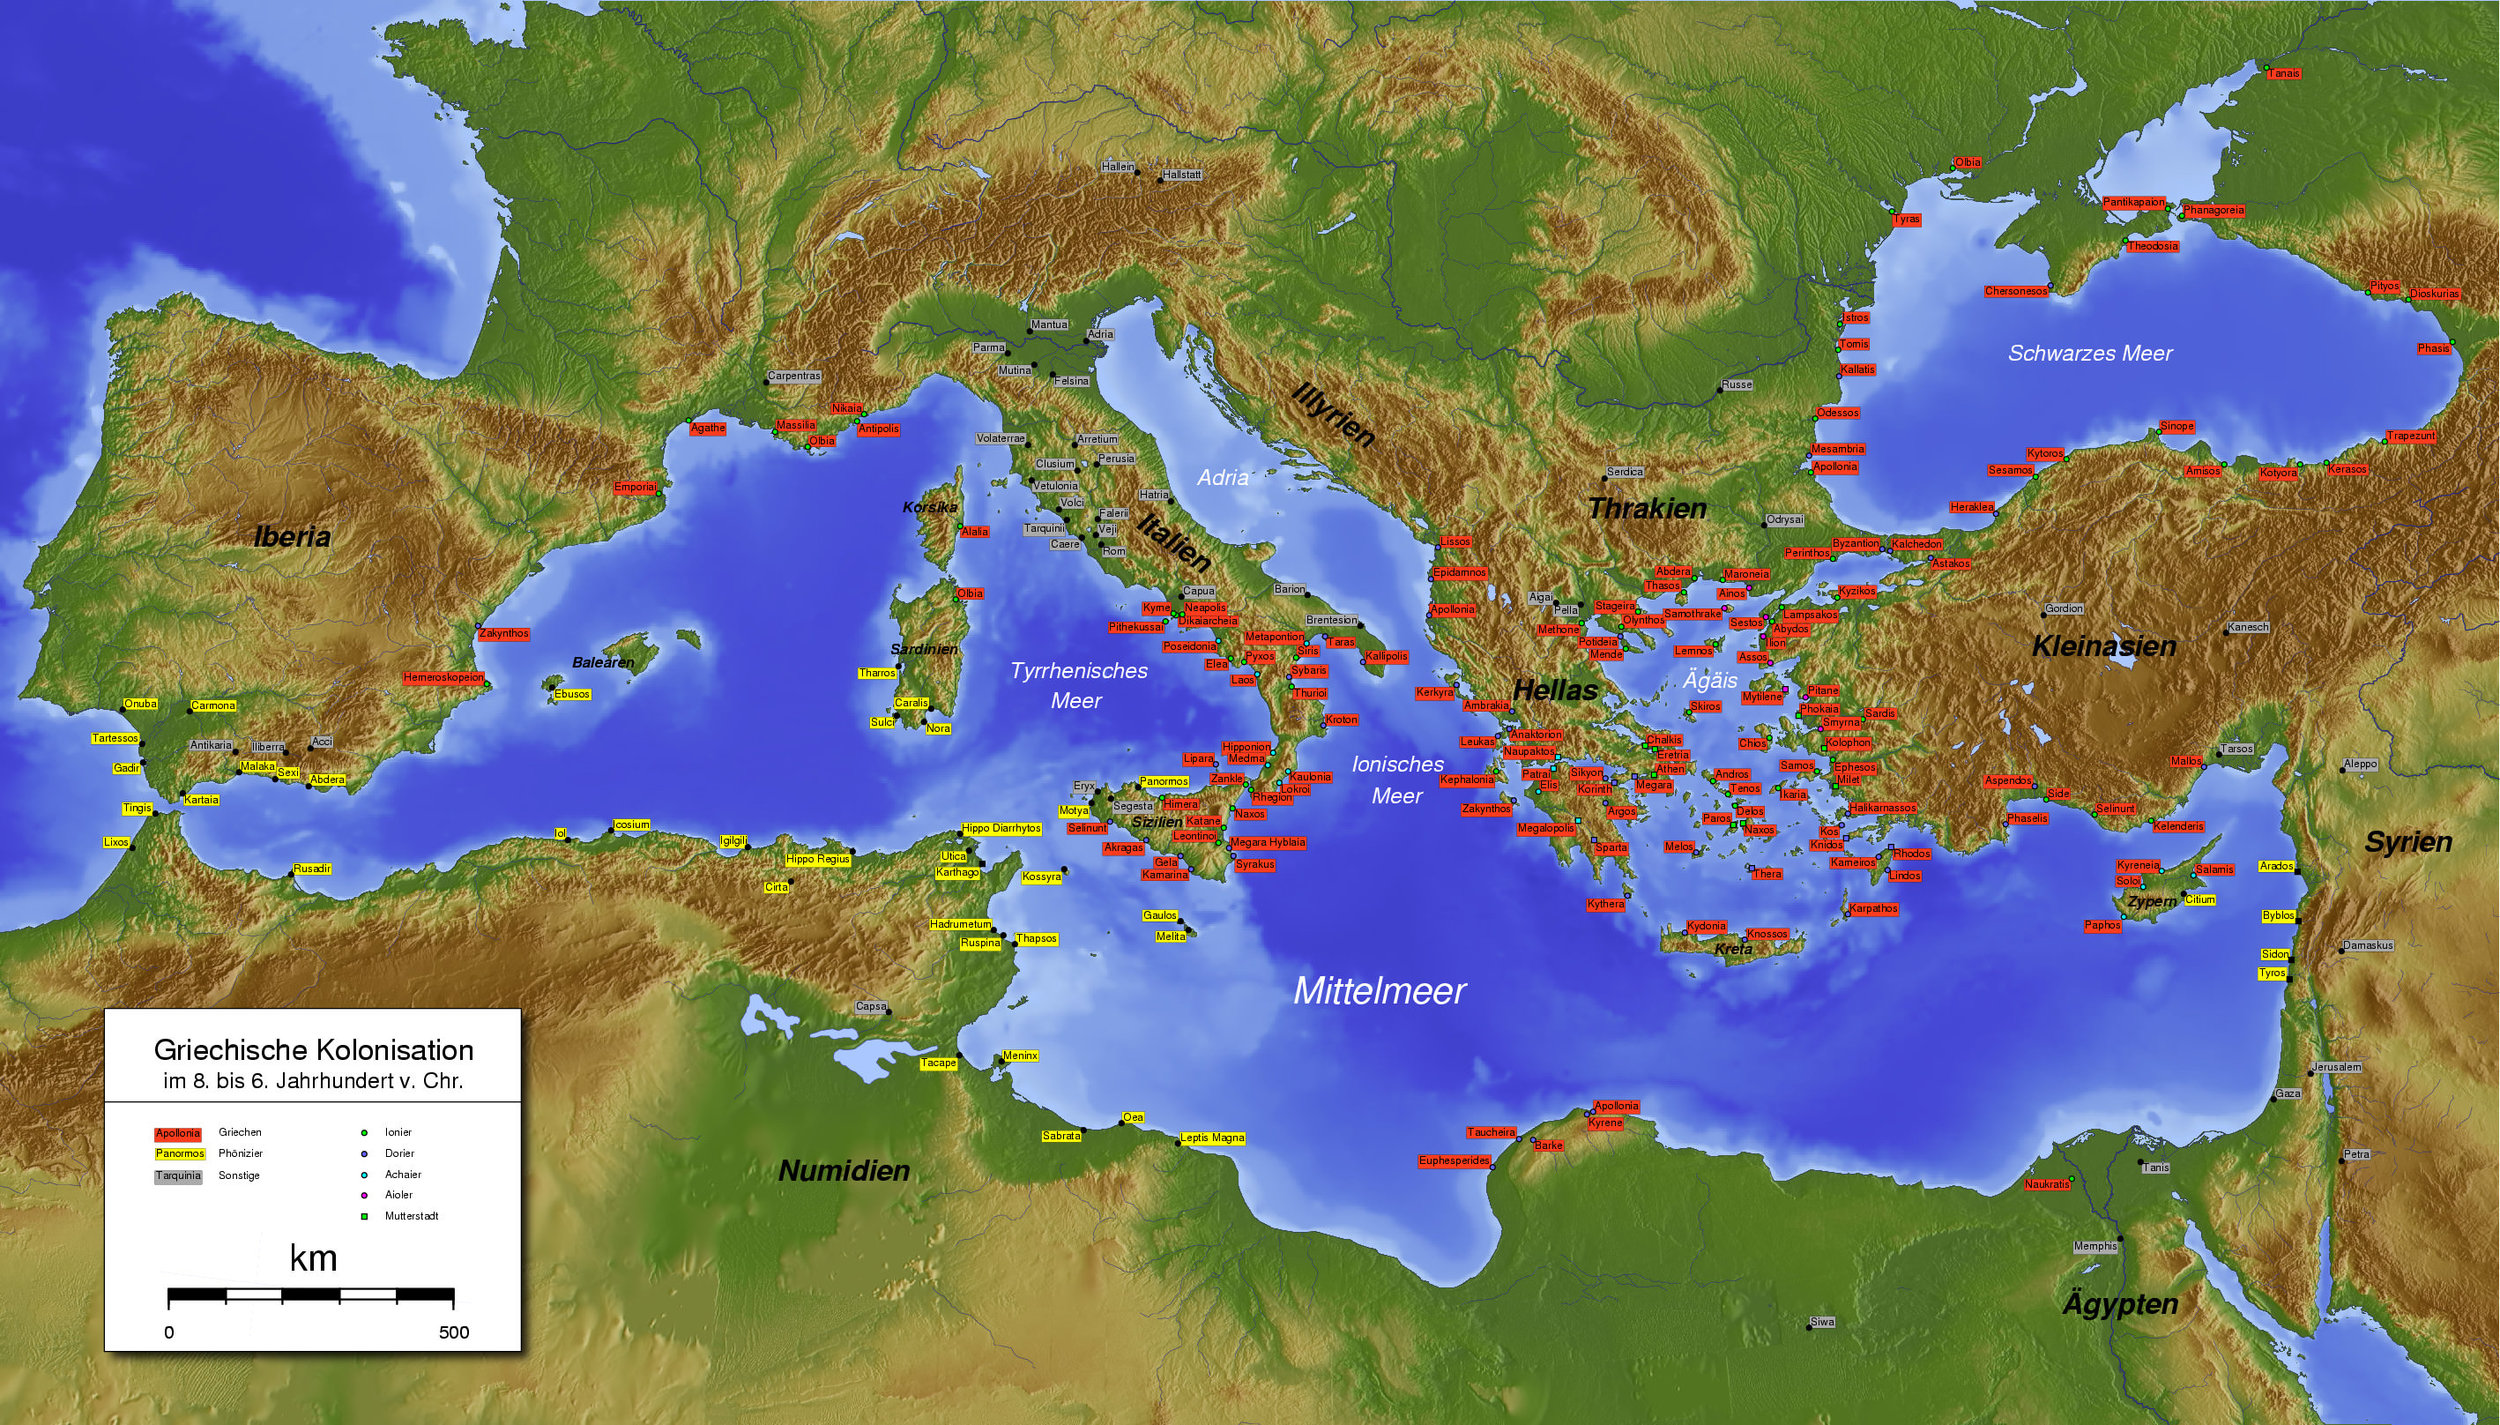 GREEK (HELLENIC) AND PHOENICIAN COLONIZATION (800-550 BC)